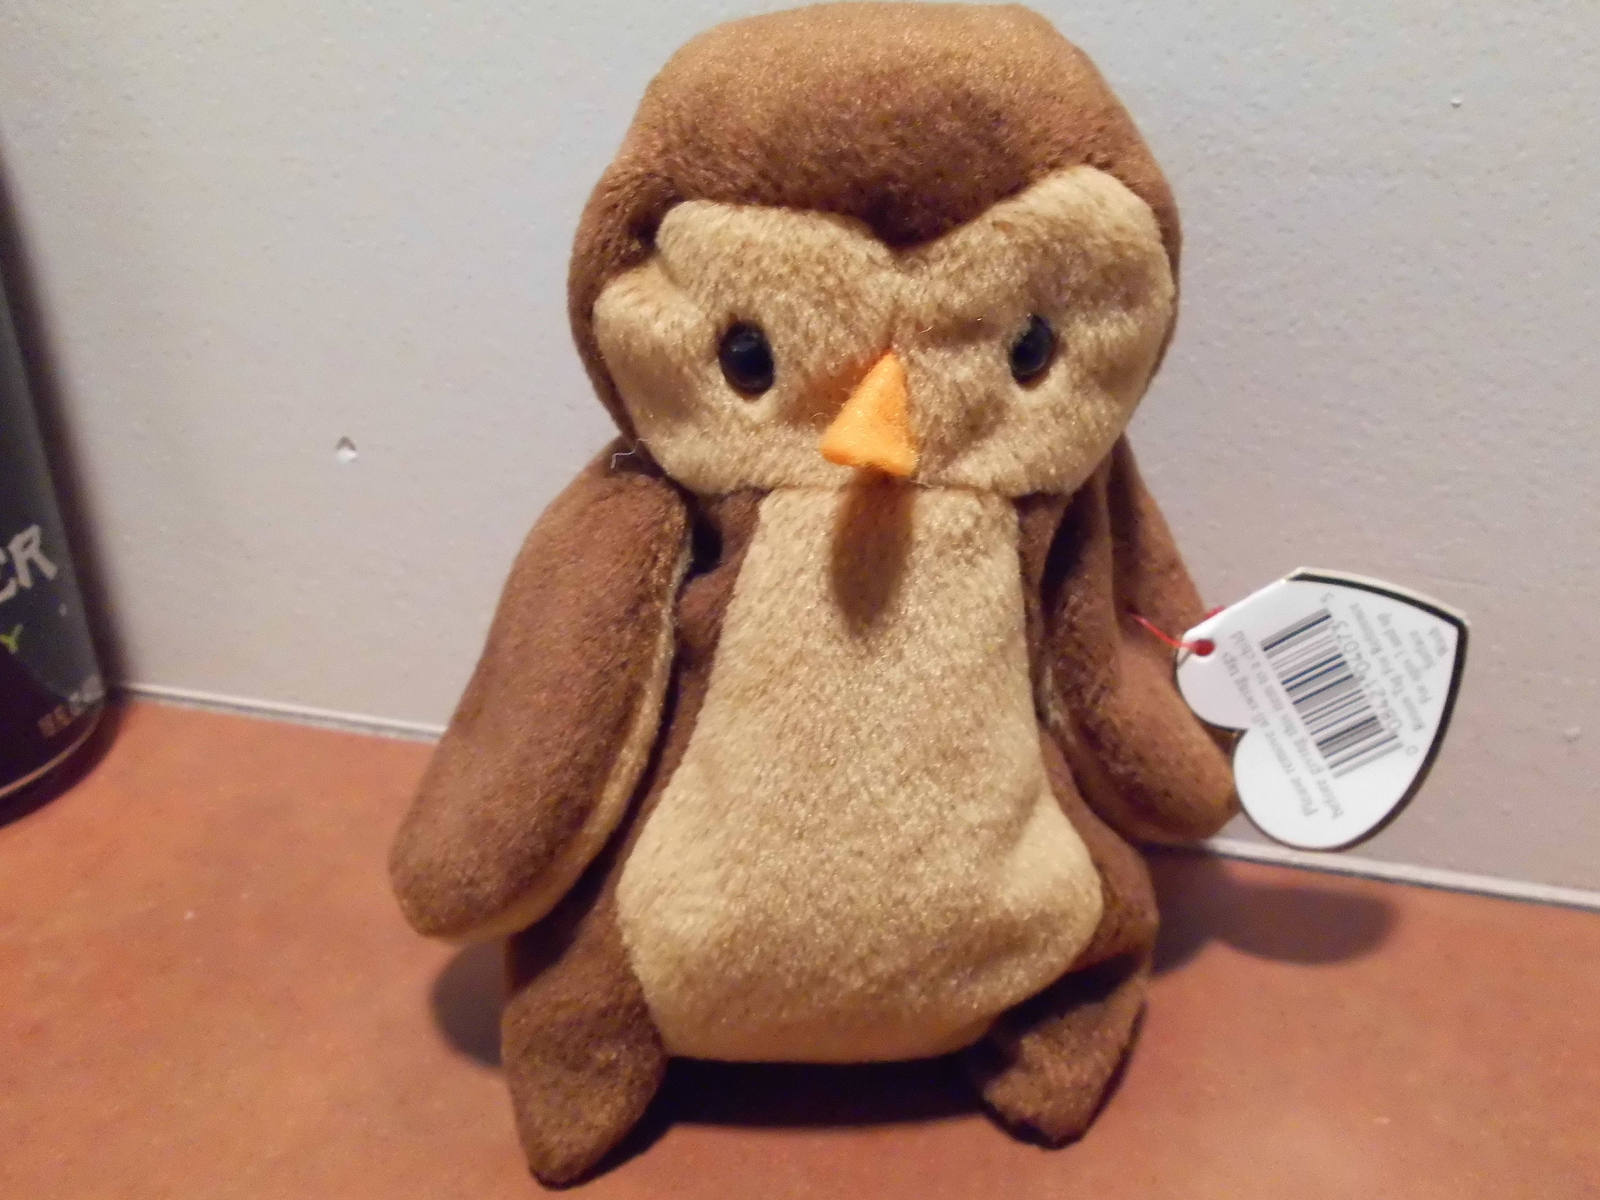 Ty Beanie Babies Hoot the Brown Owl and 50 similar items. Il  fullxfull.1381648346 lb6l f033fb7e643c